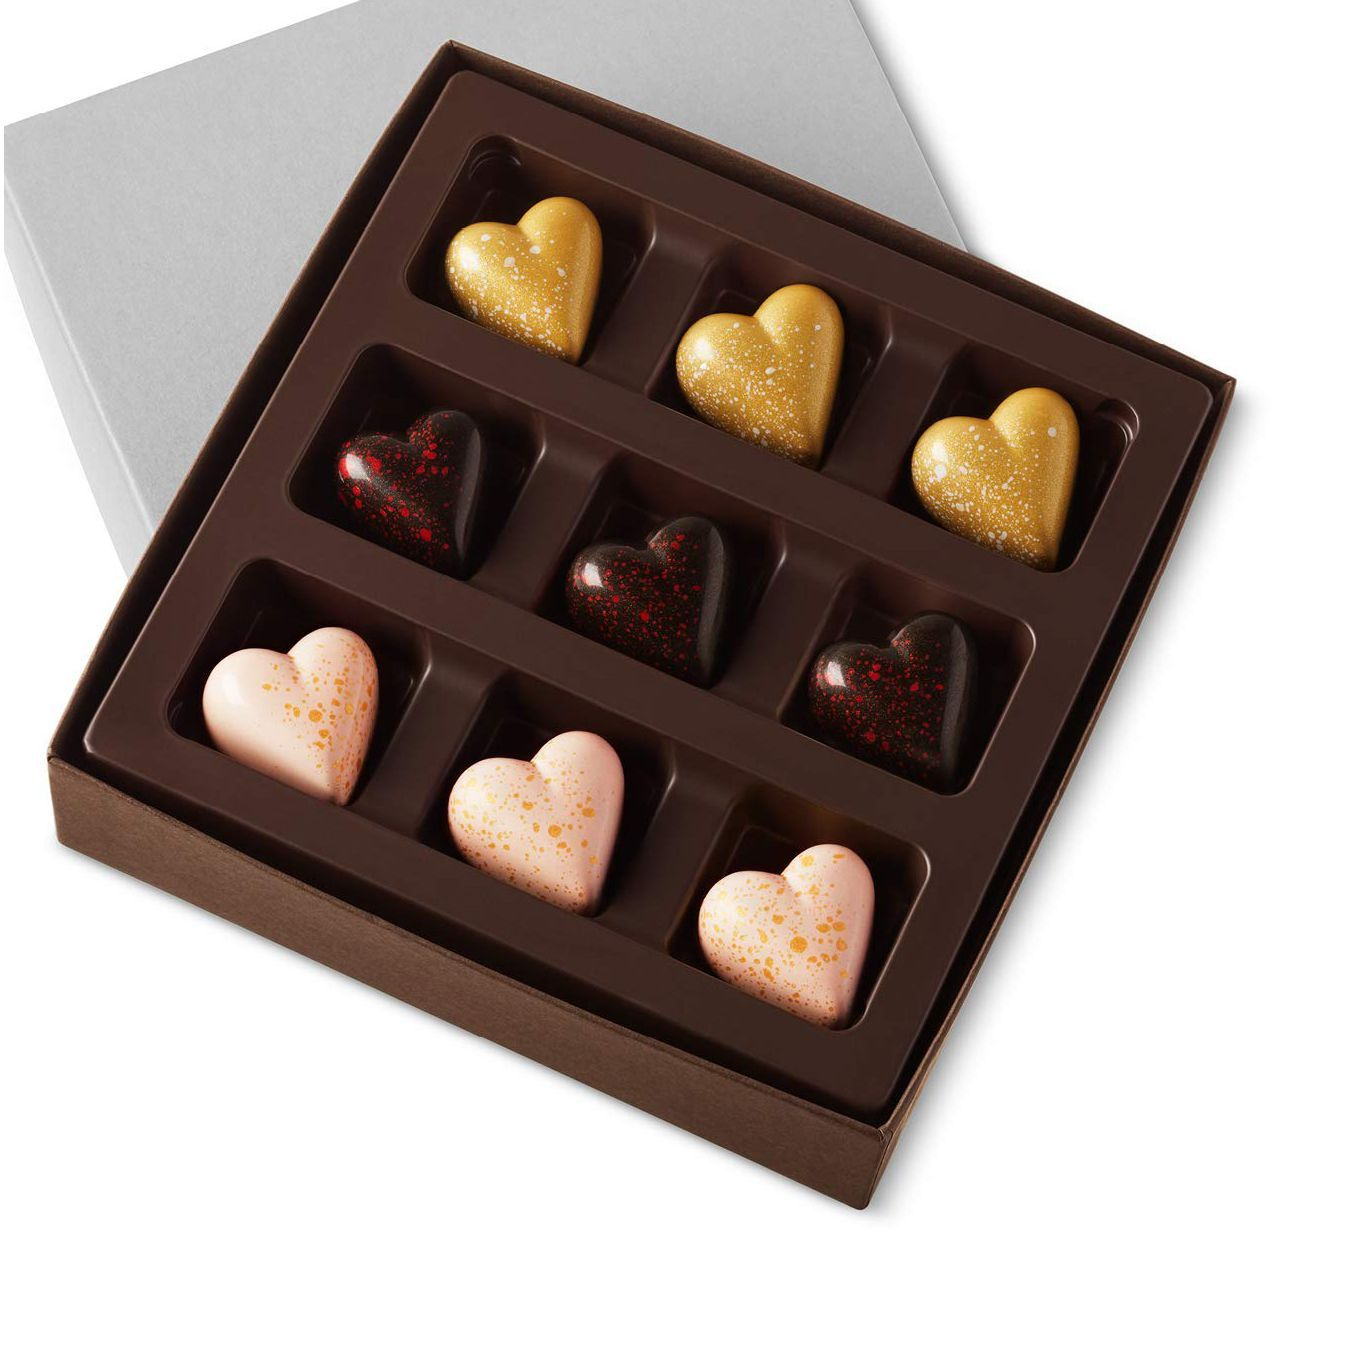 35 Best Valentines Day Chocolates And Candy 2019 Top Store Bought